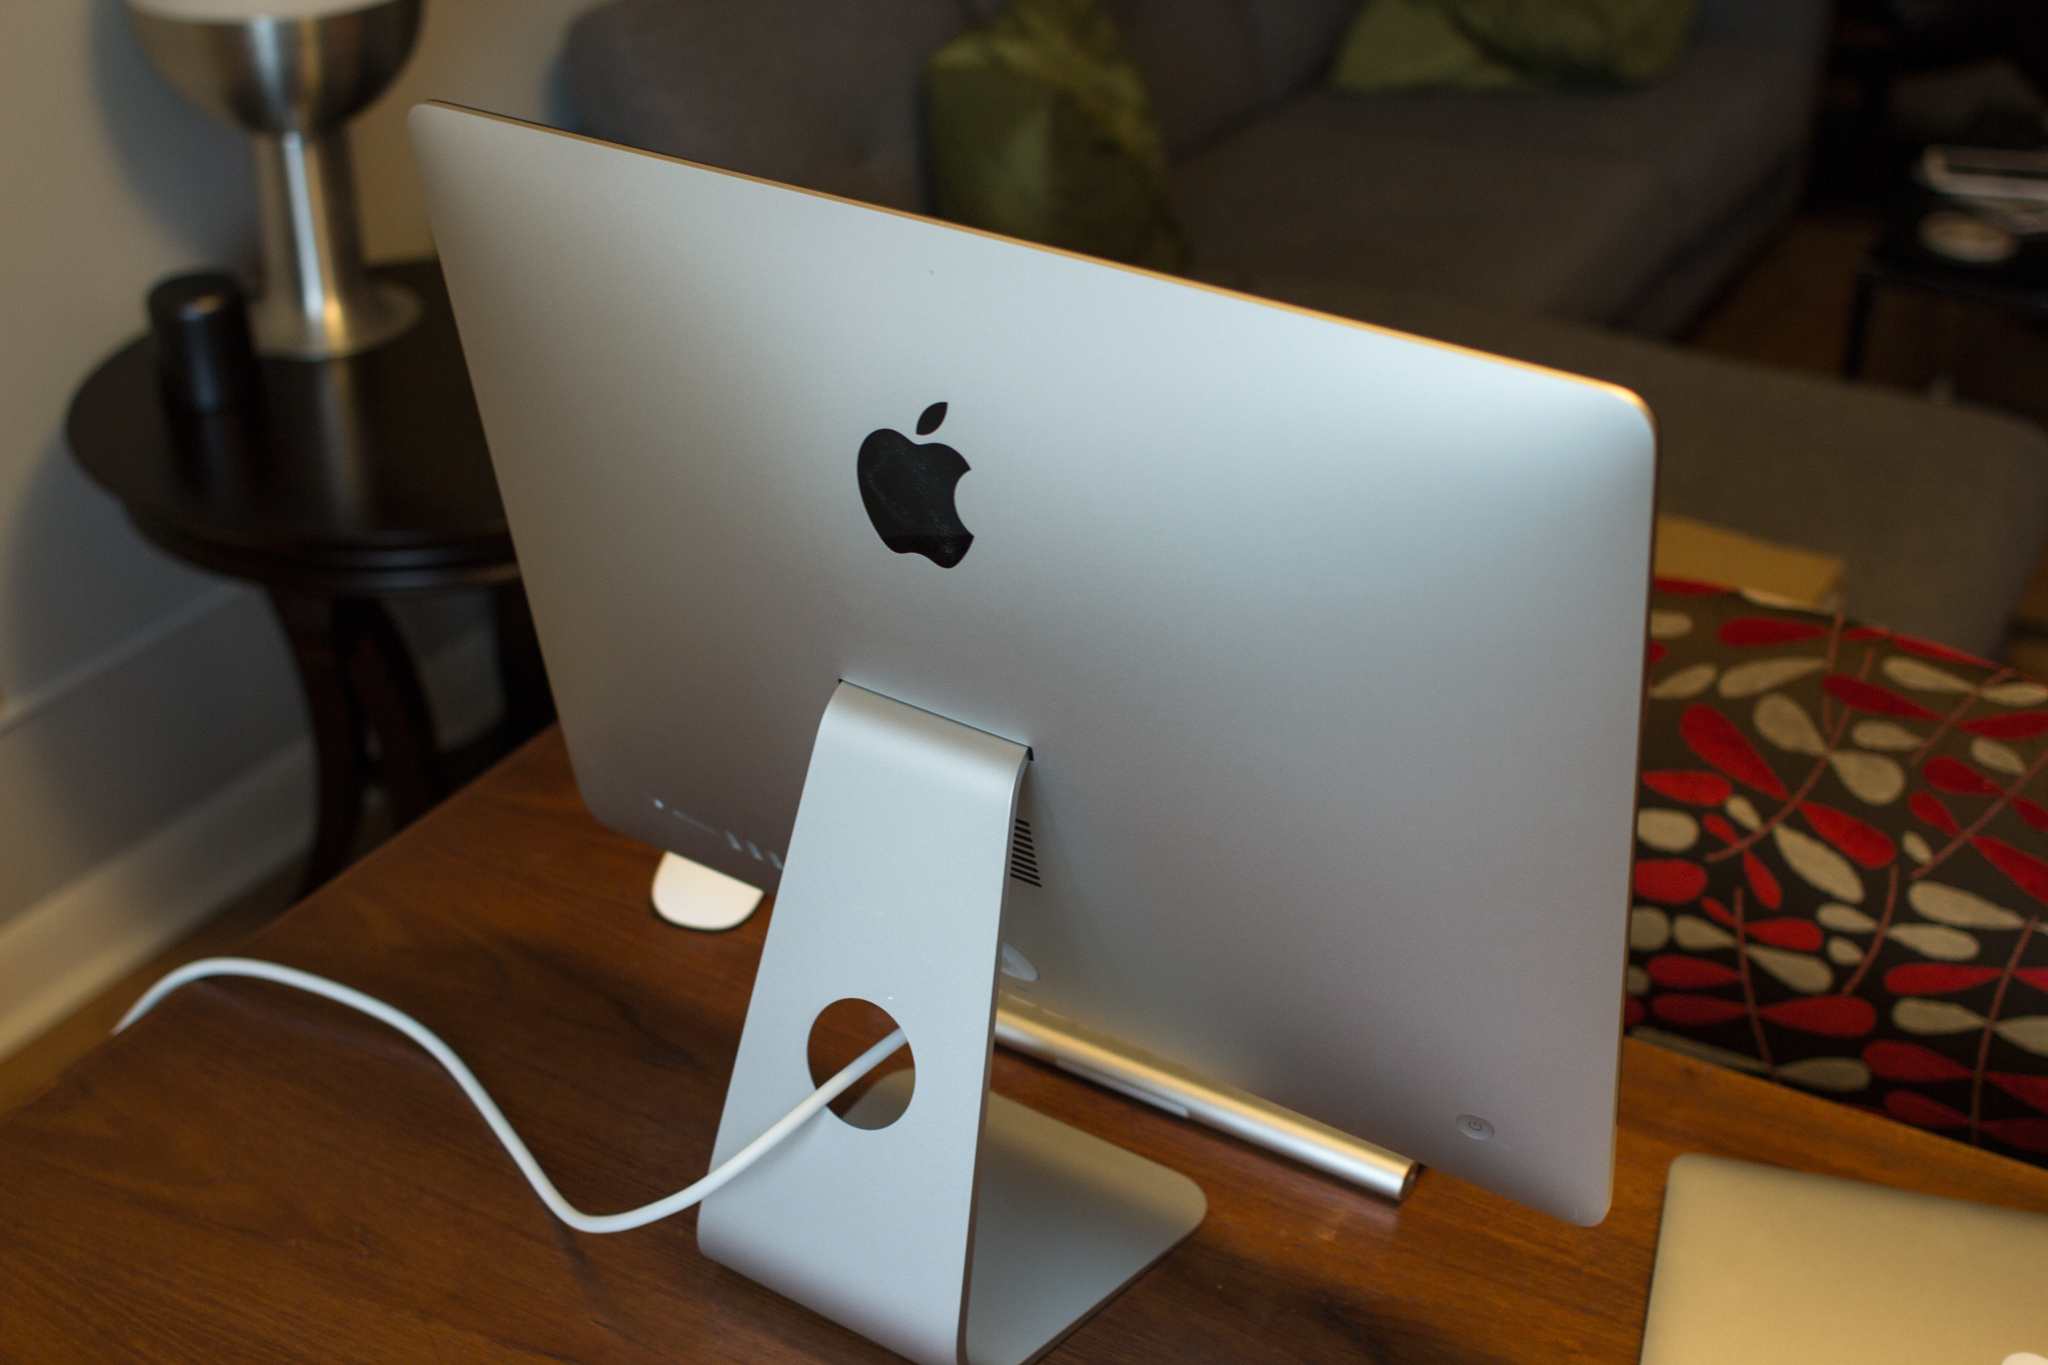 21.5-inch 2012 iMac, from the back